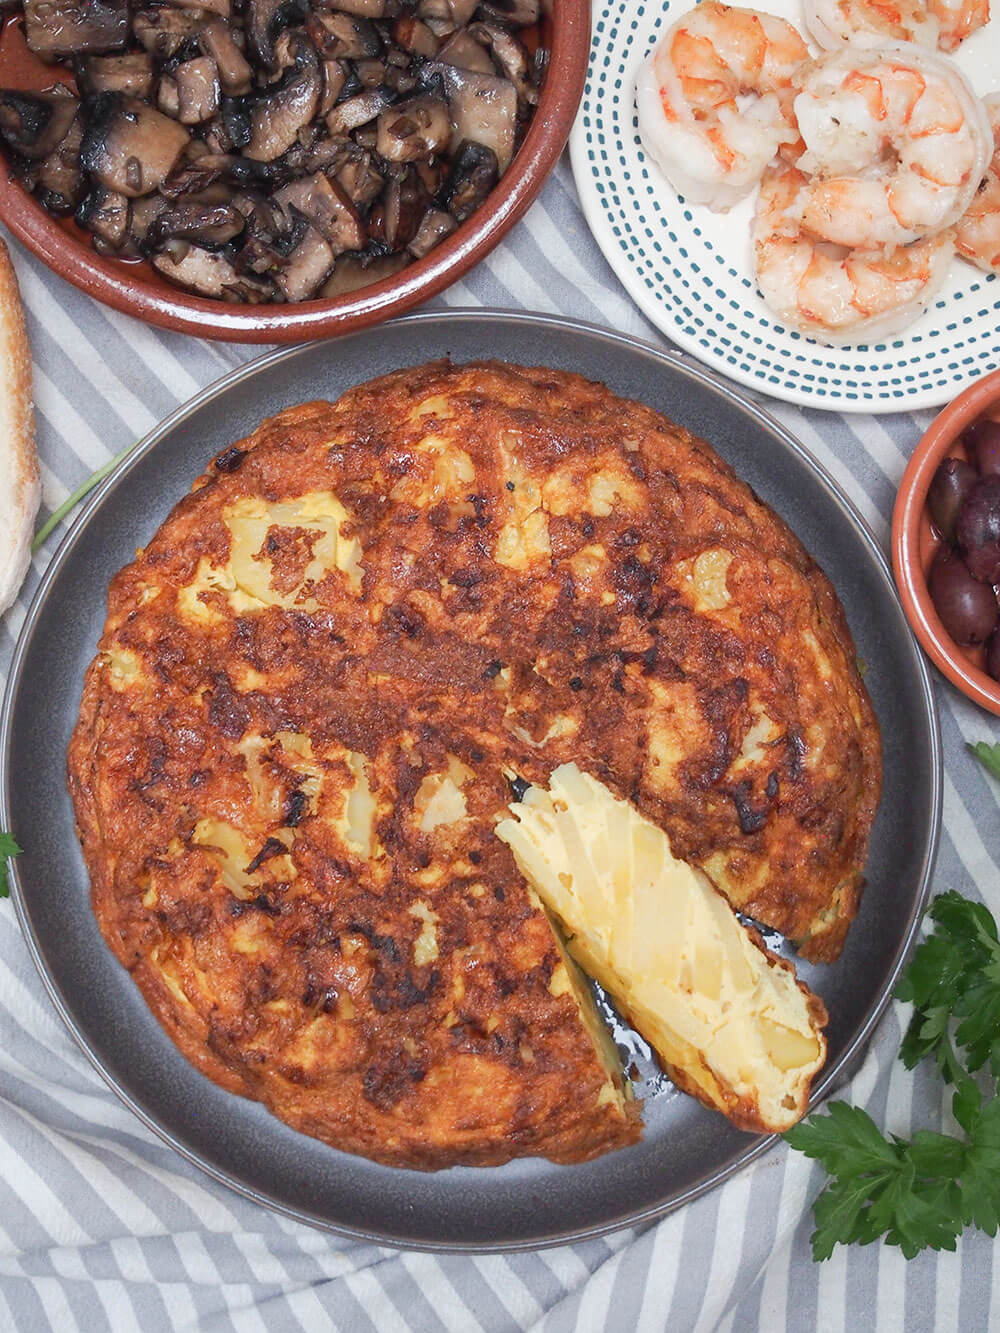 Spanish tortilla, tortilla Española from above as part of a tapas meal